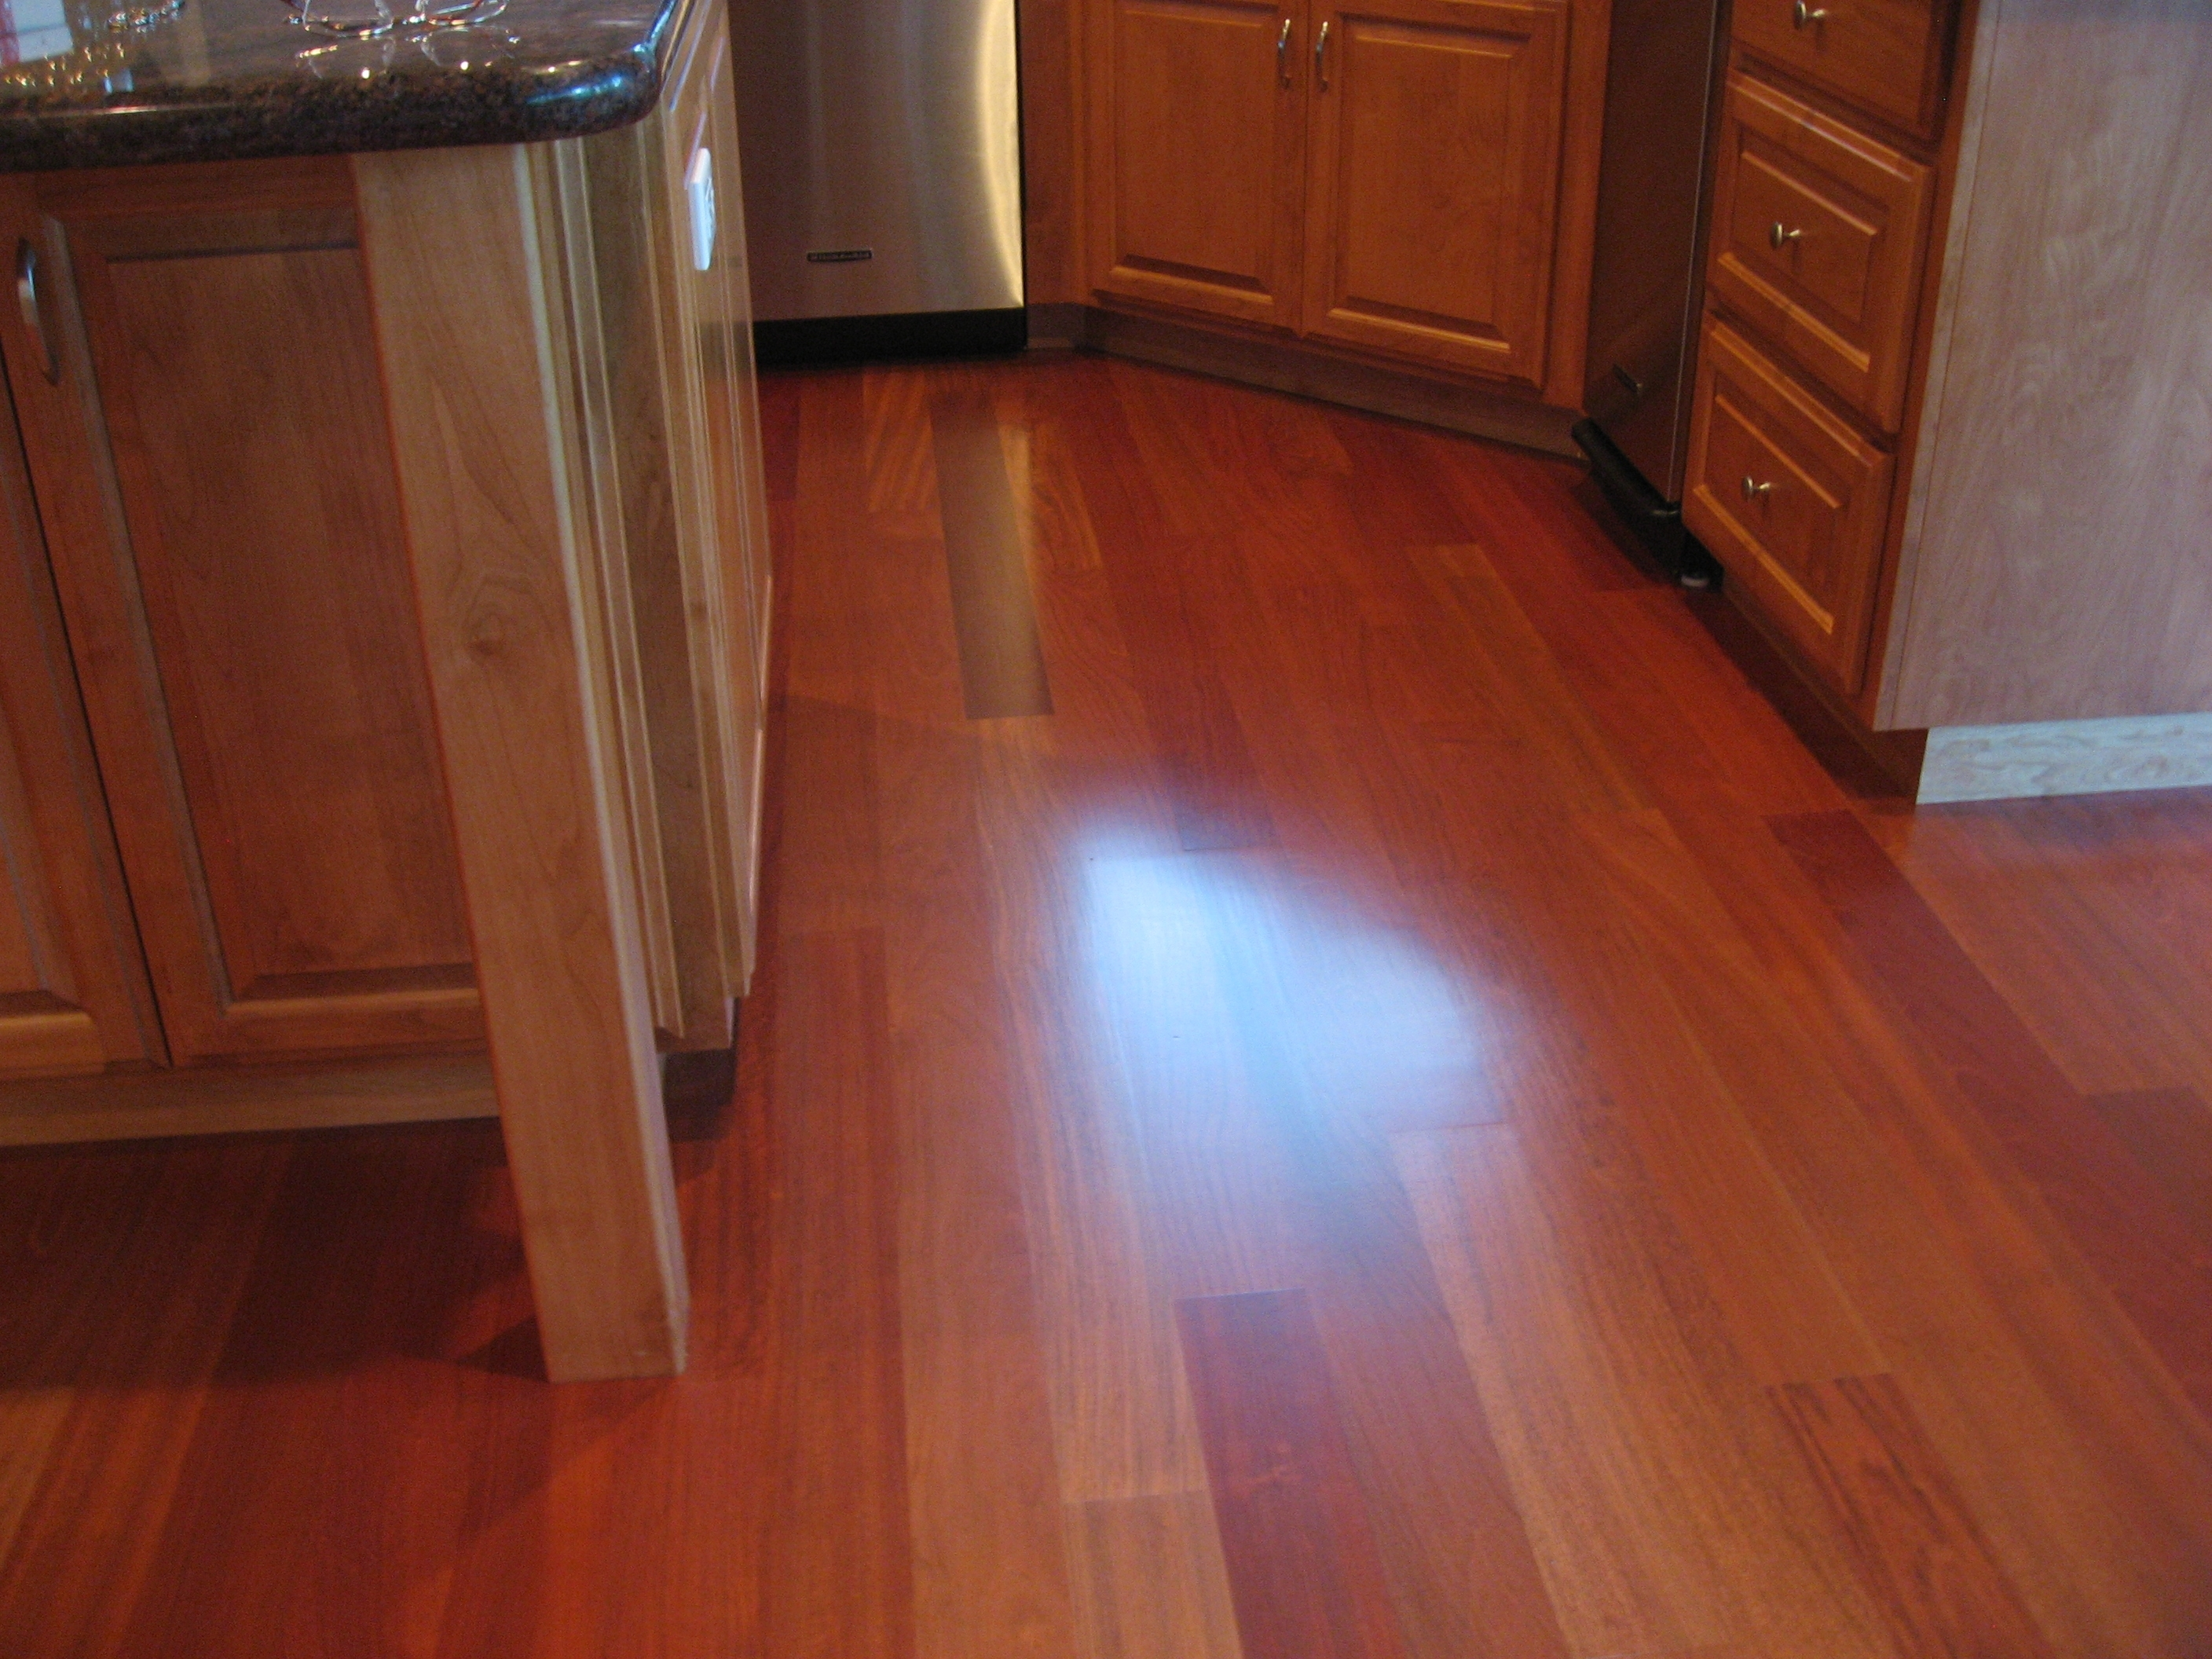 Harmonics Vineyard Cherry Laminate Flooring Costco